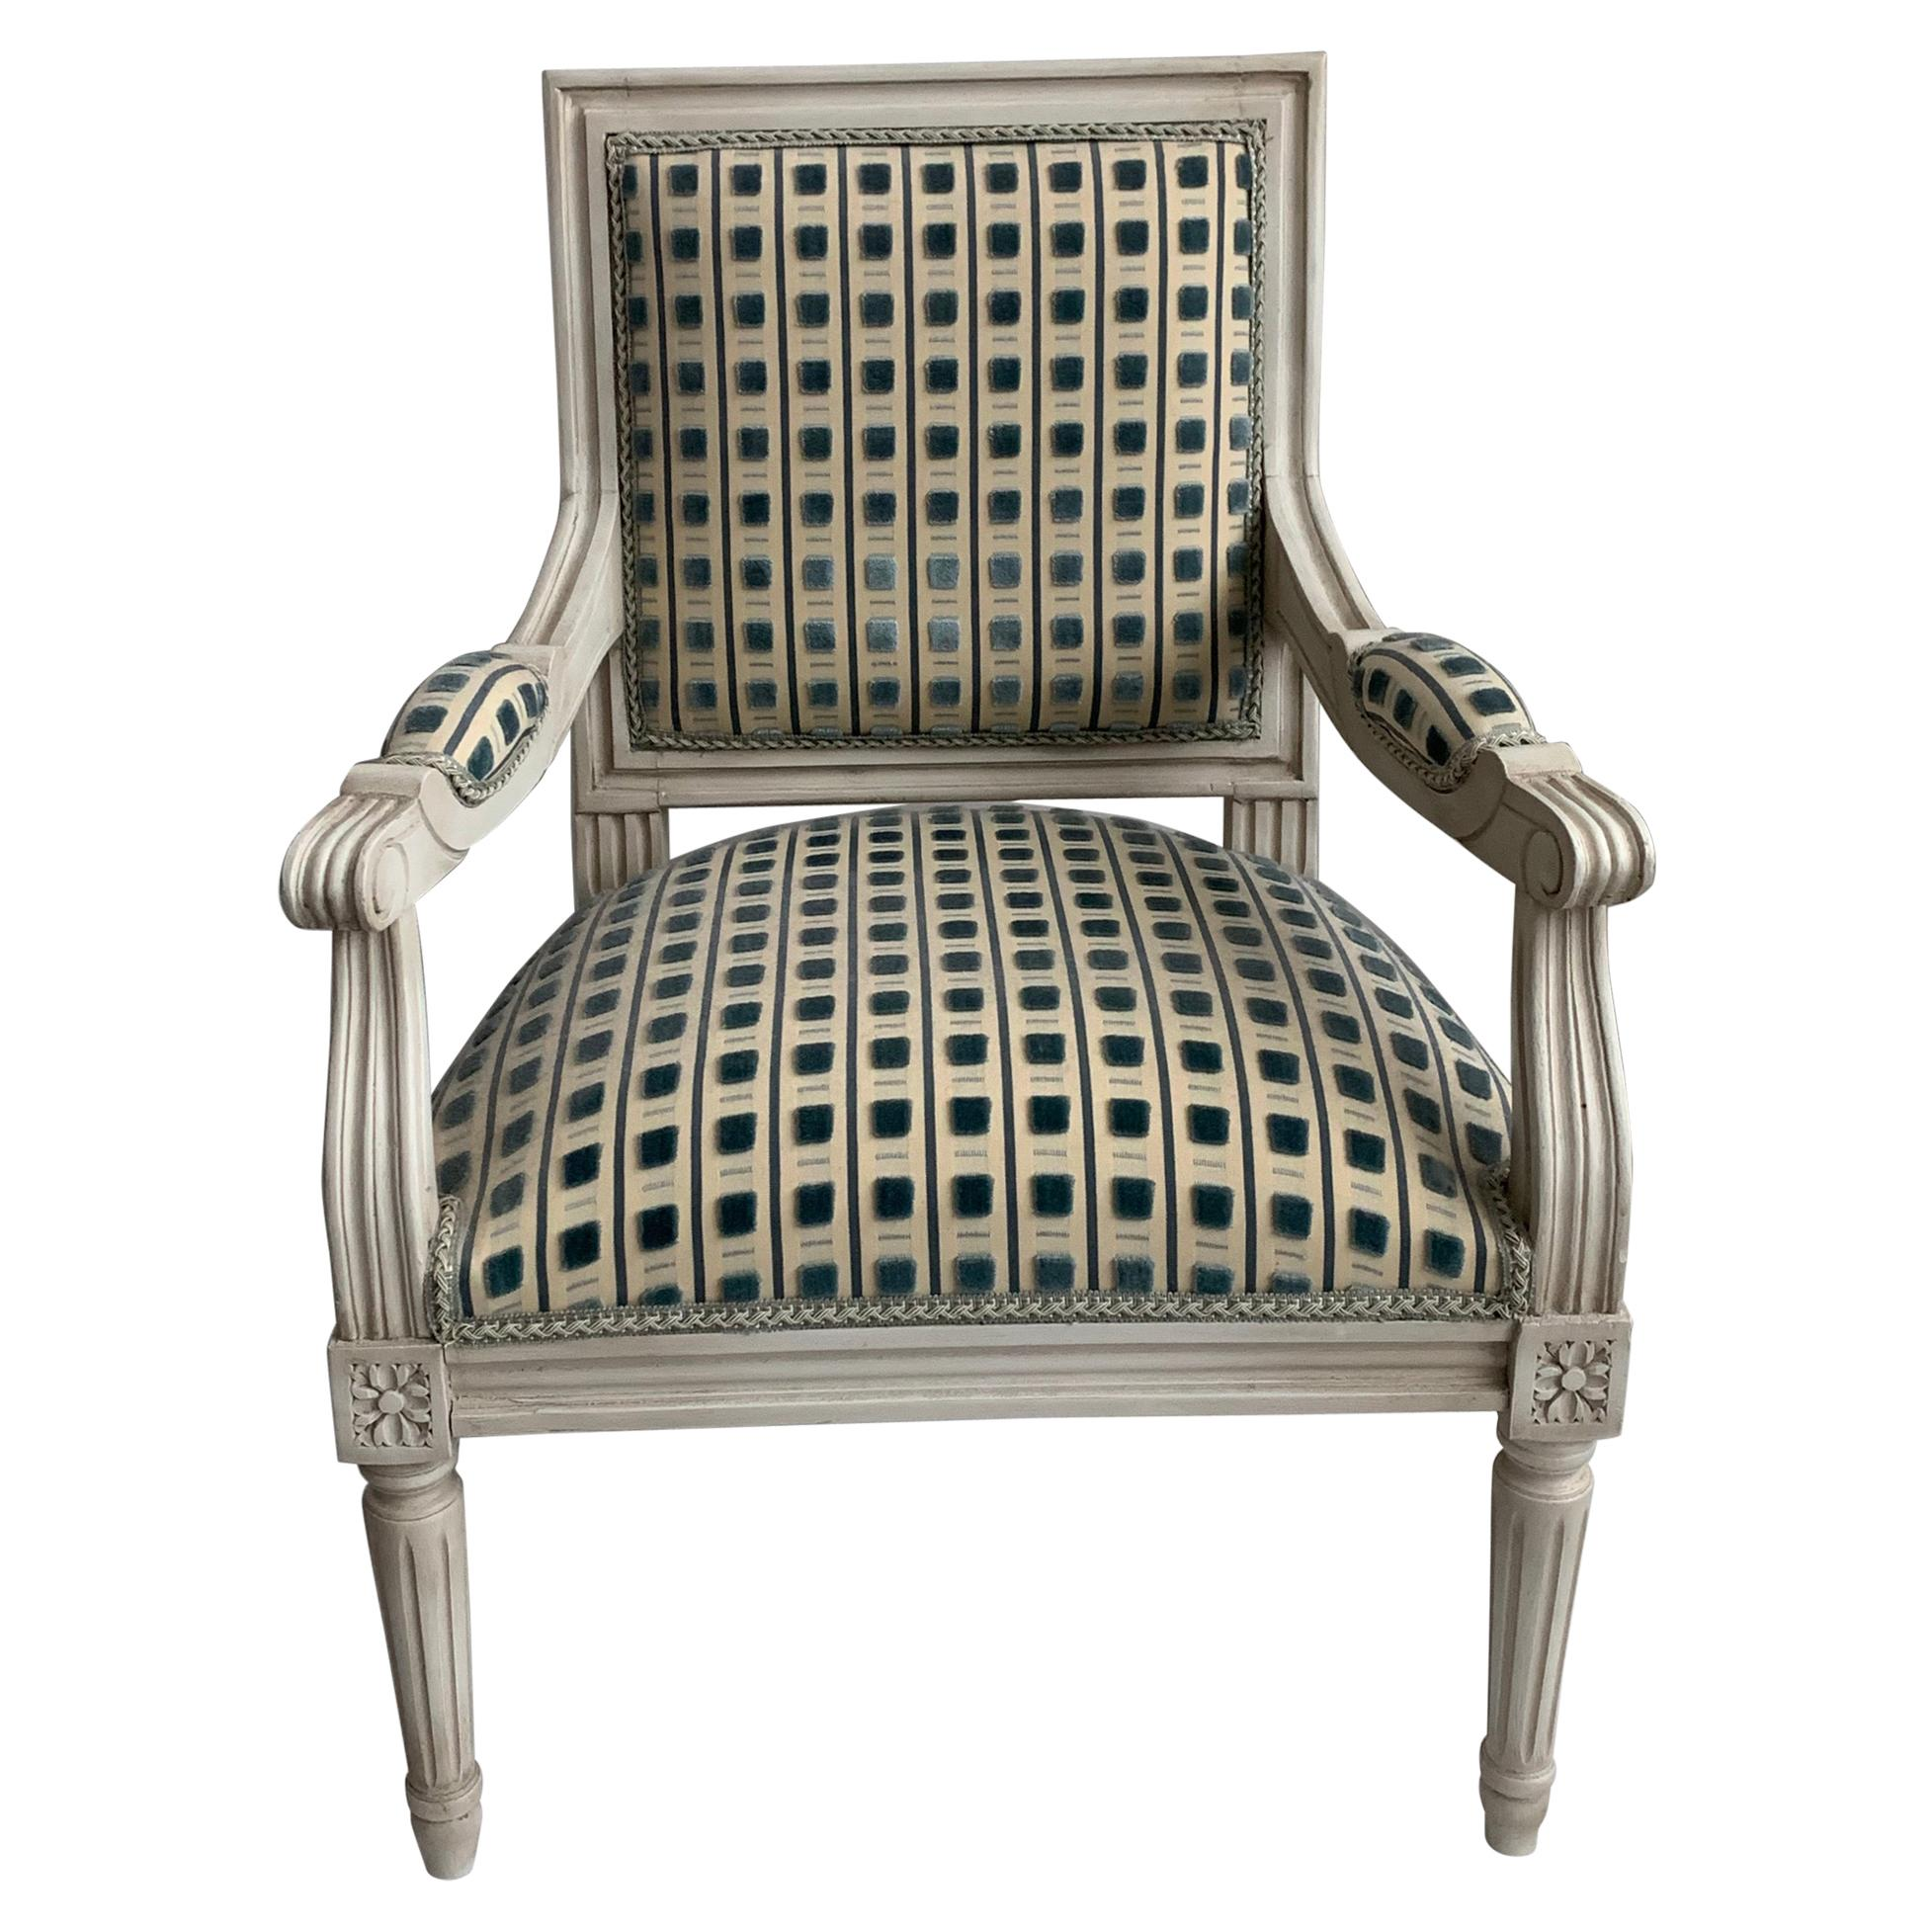 French Louis XVI Style Children's Upholstered Armchair